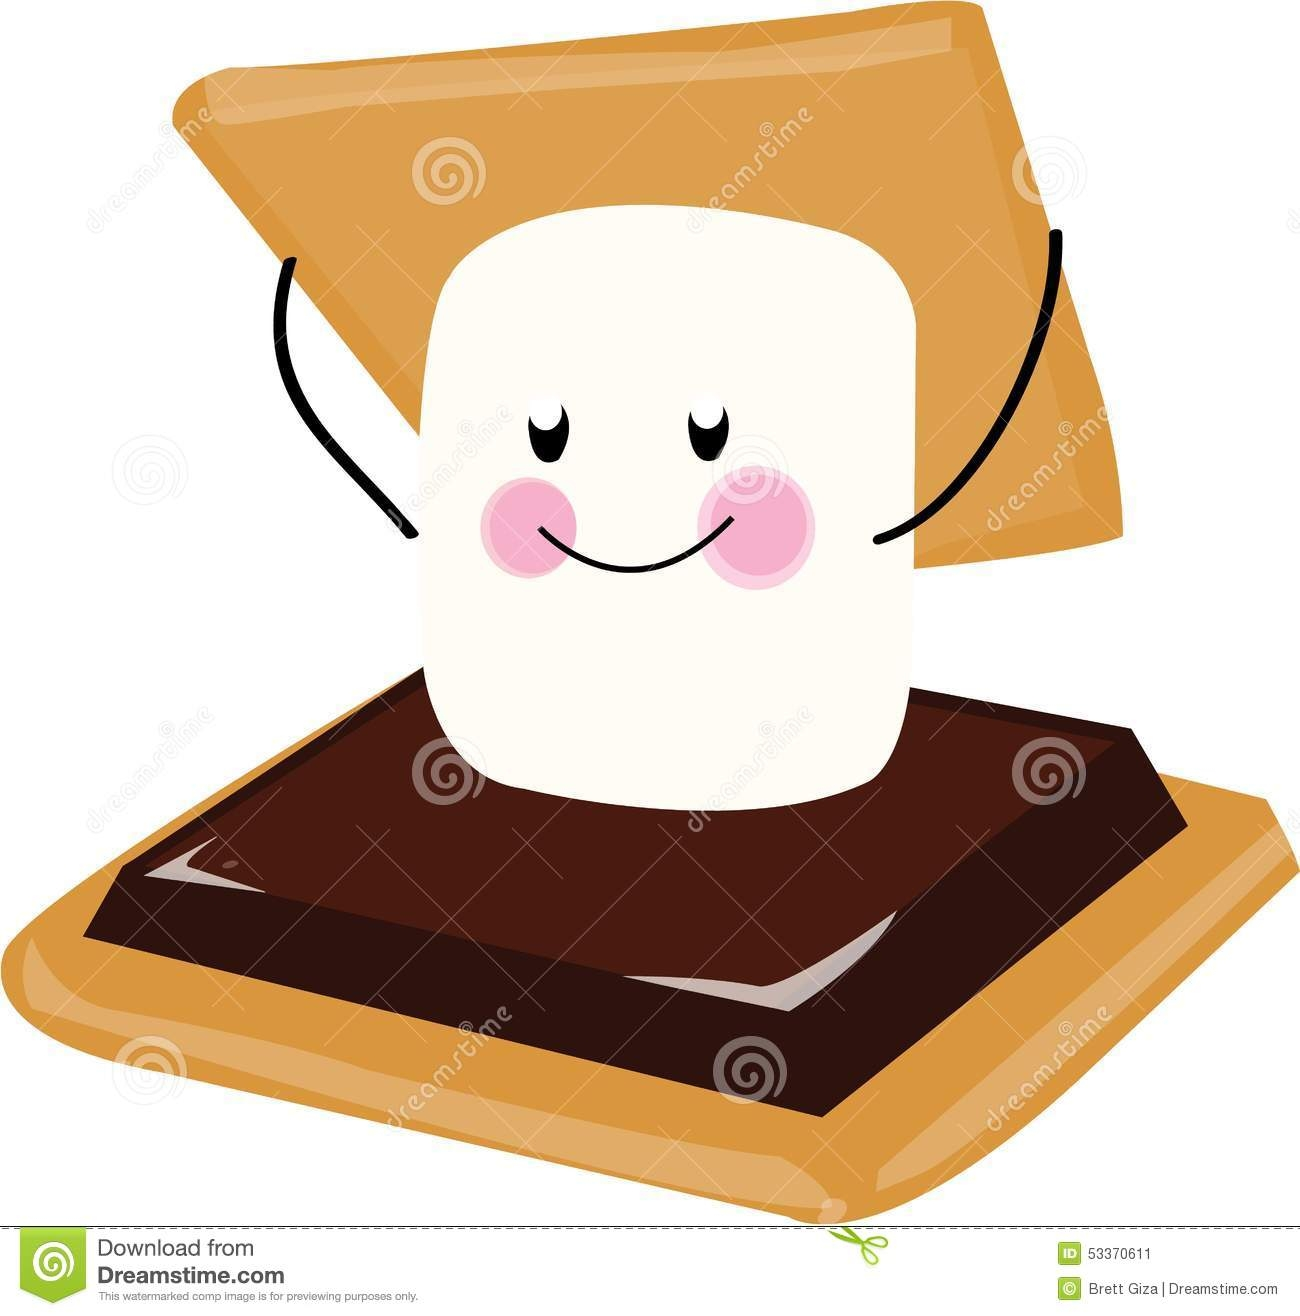 Smores clipart. Best of smore collection